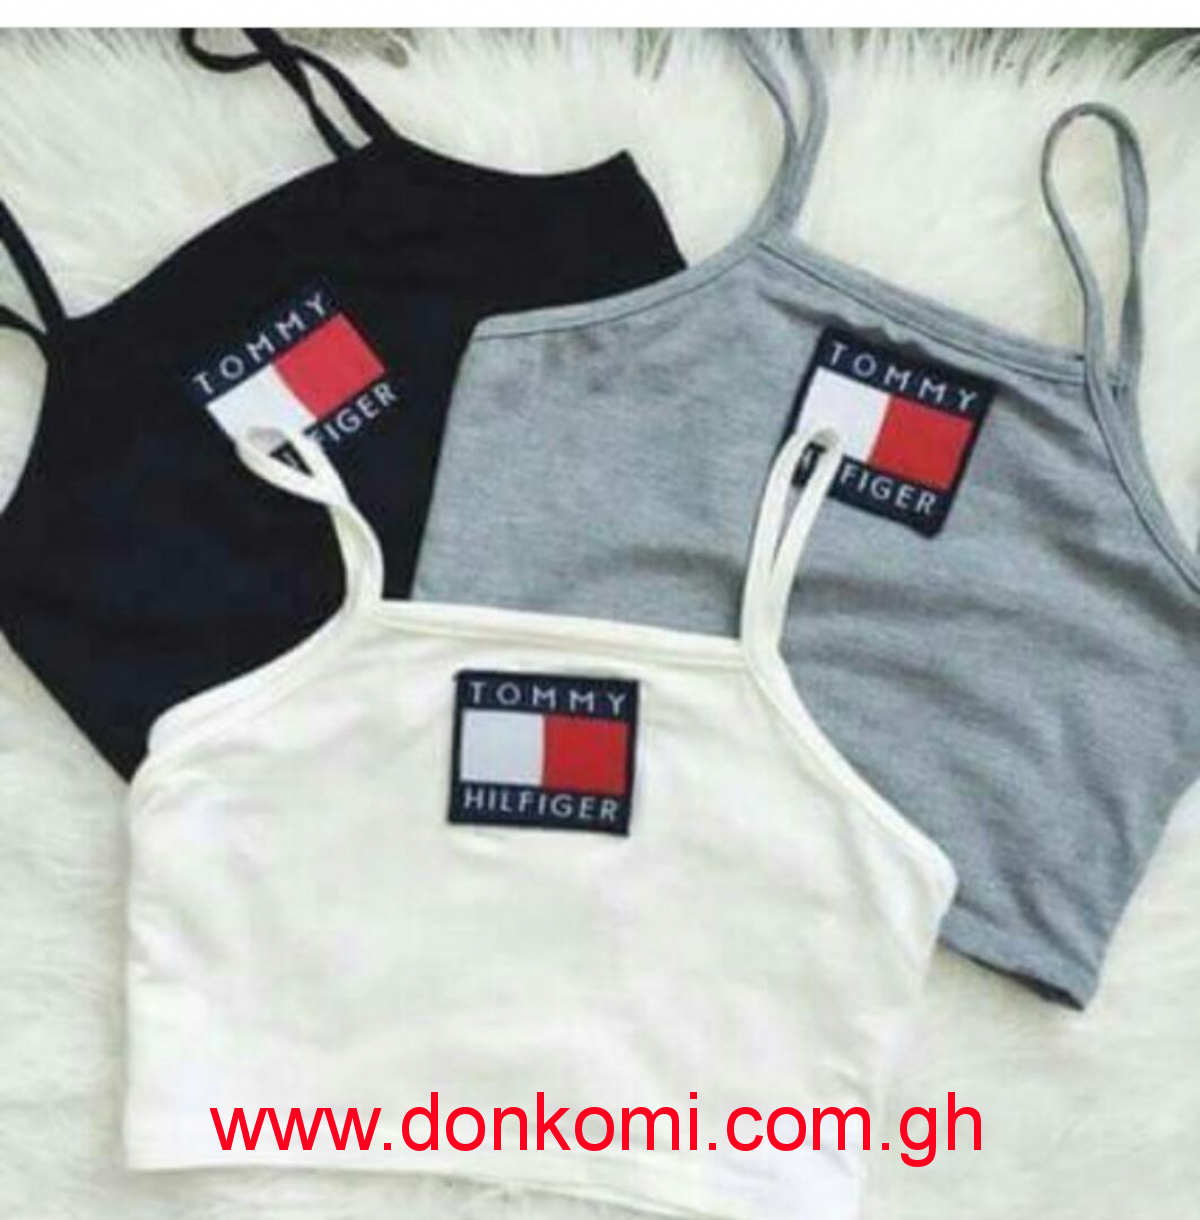 Tank tops for ladies - Tommy Hilfiger (Colour White)